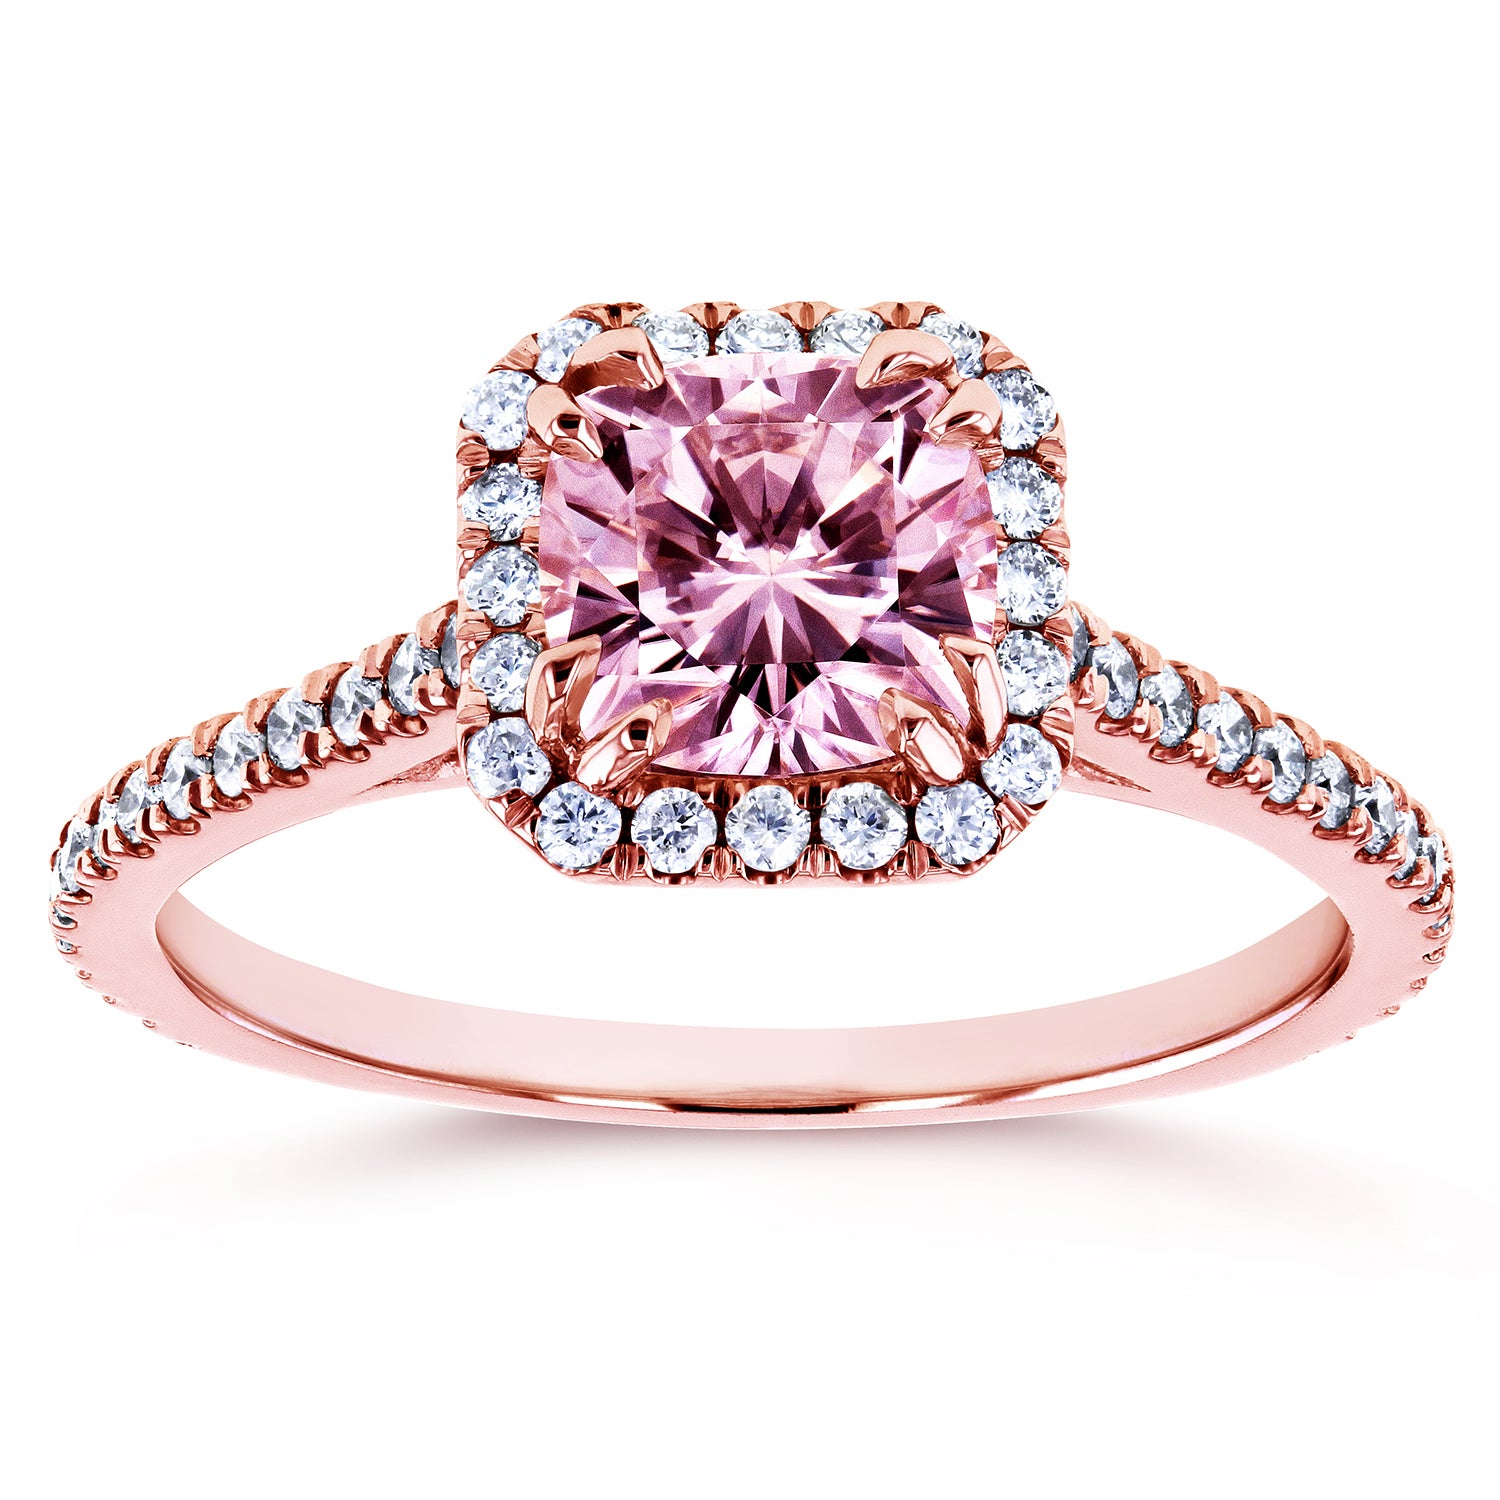 Annello by Kobelli 14k Rose Gold 1 2/5ct TGW Pink Moissanite and ...